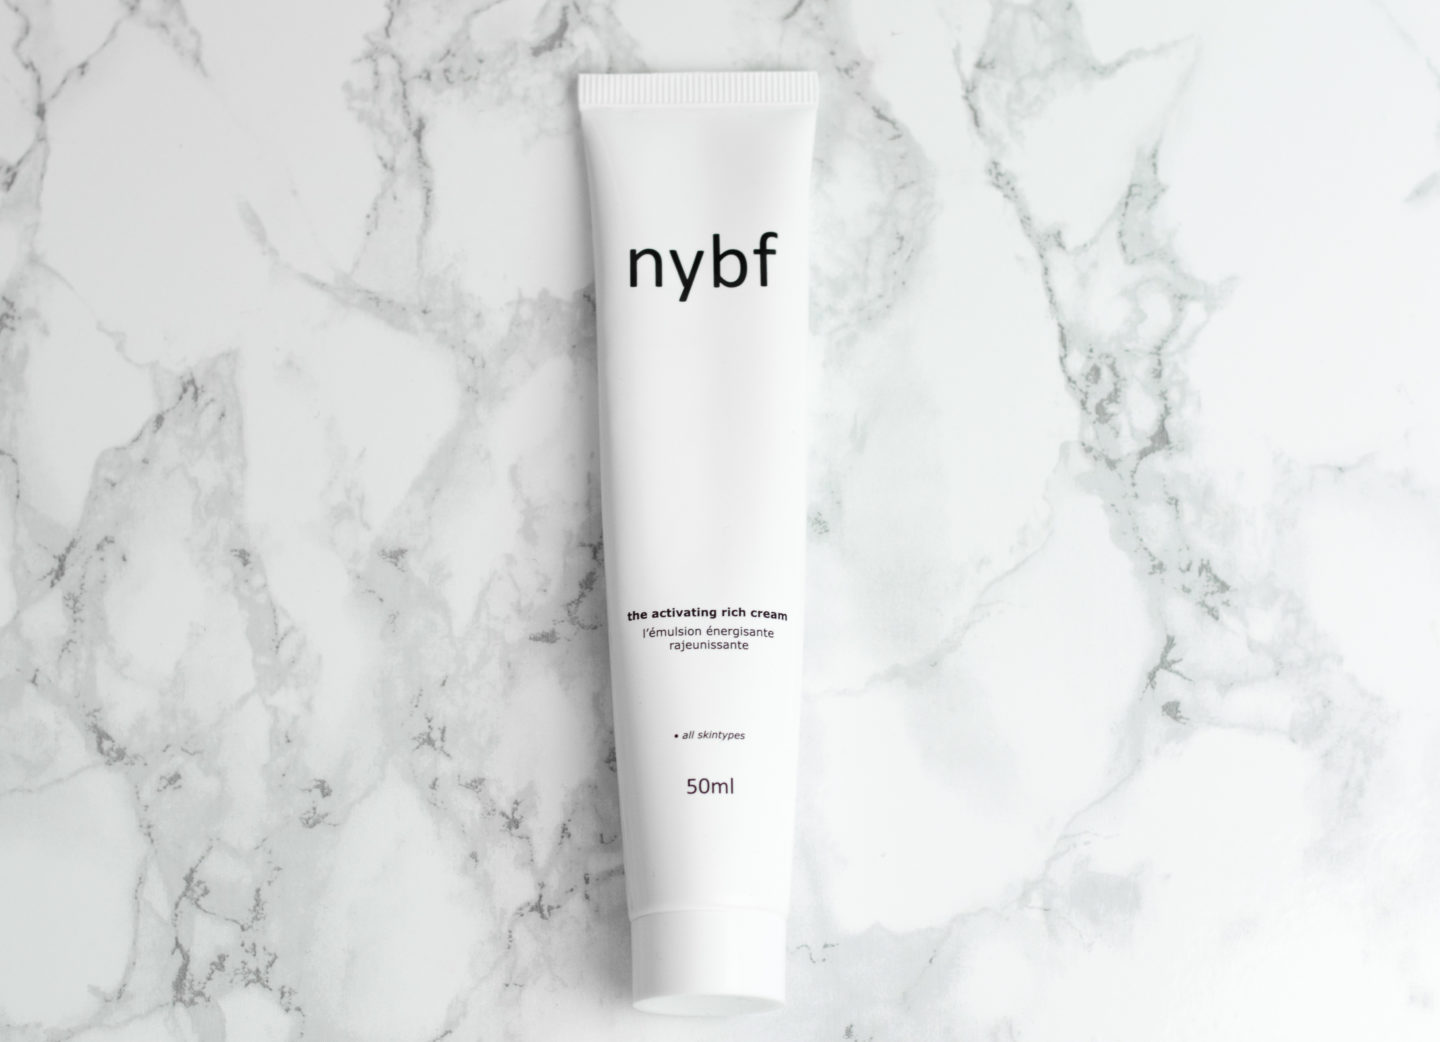 NYBF The activating rich cream